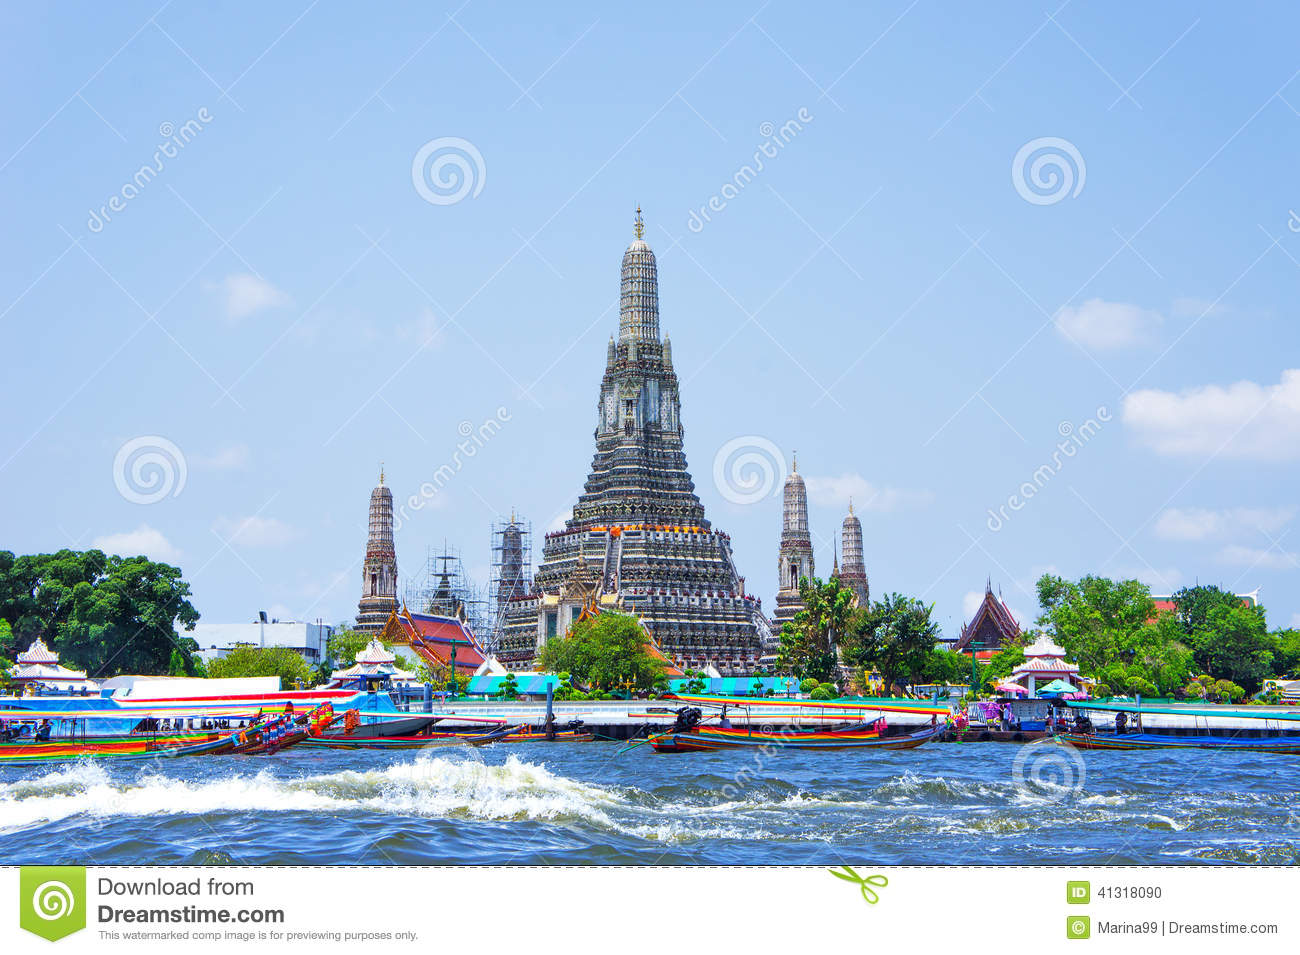 Wat Arun And Long Tail Motor Boat Cruise On River In Bangkok Stock Photo - Image: 41318090